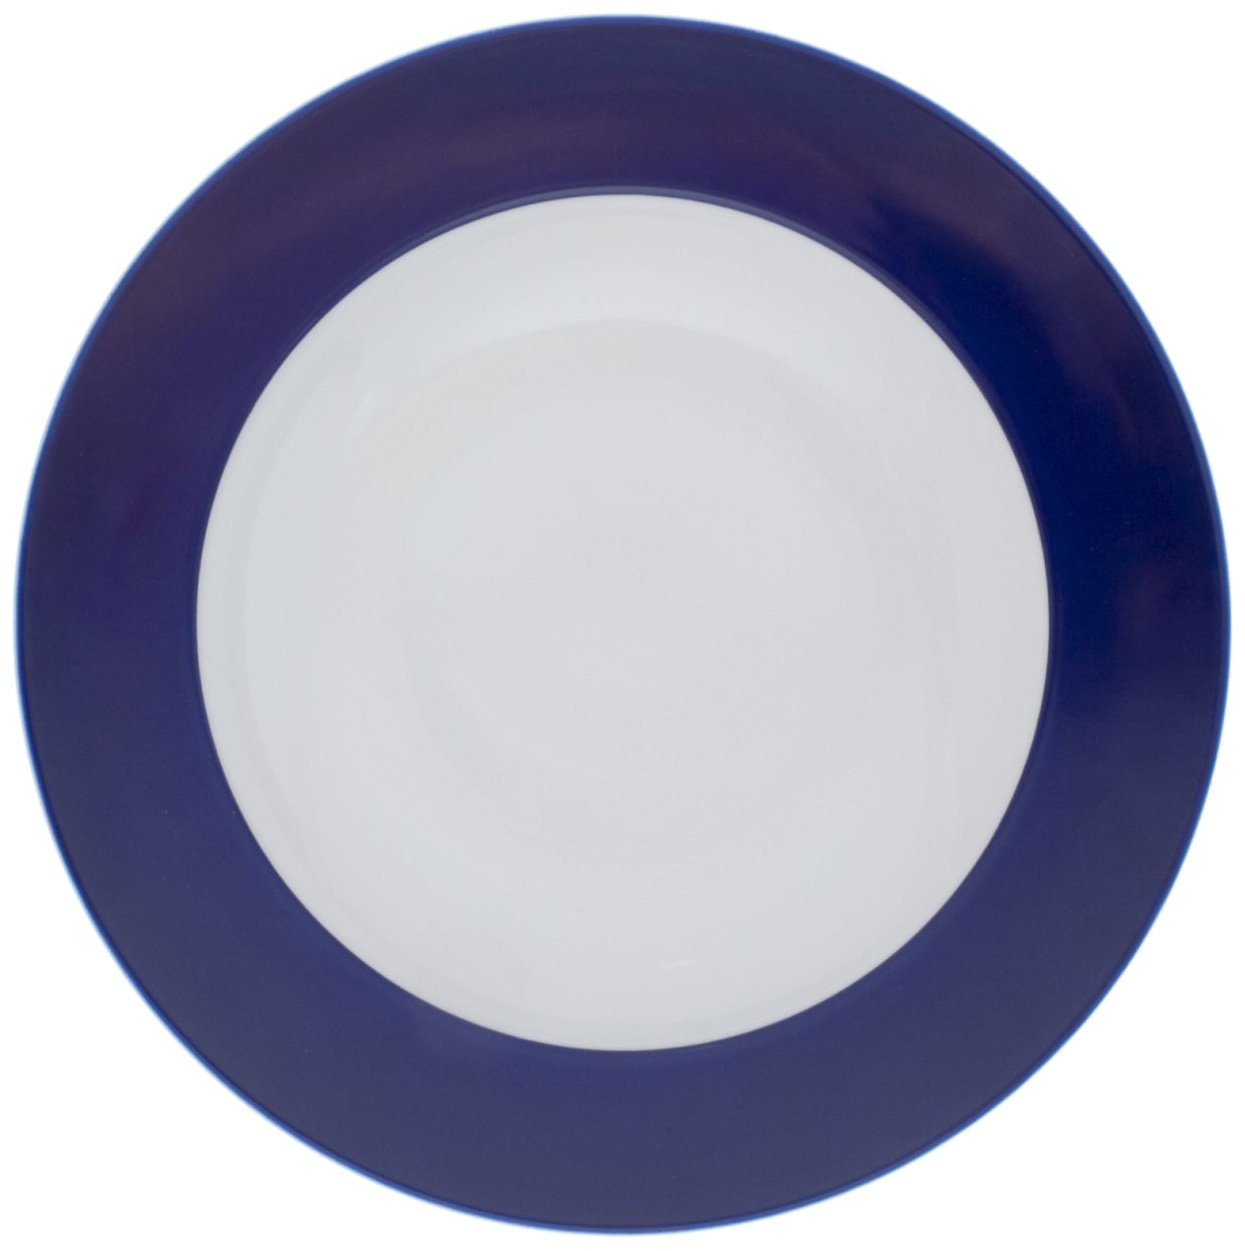 KAHLA Pronto Brunch Plate 9 Inches, Night Blue Color, 1 Piece 576400A70307C